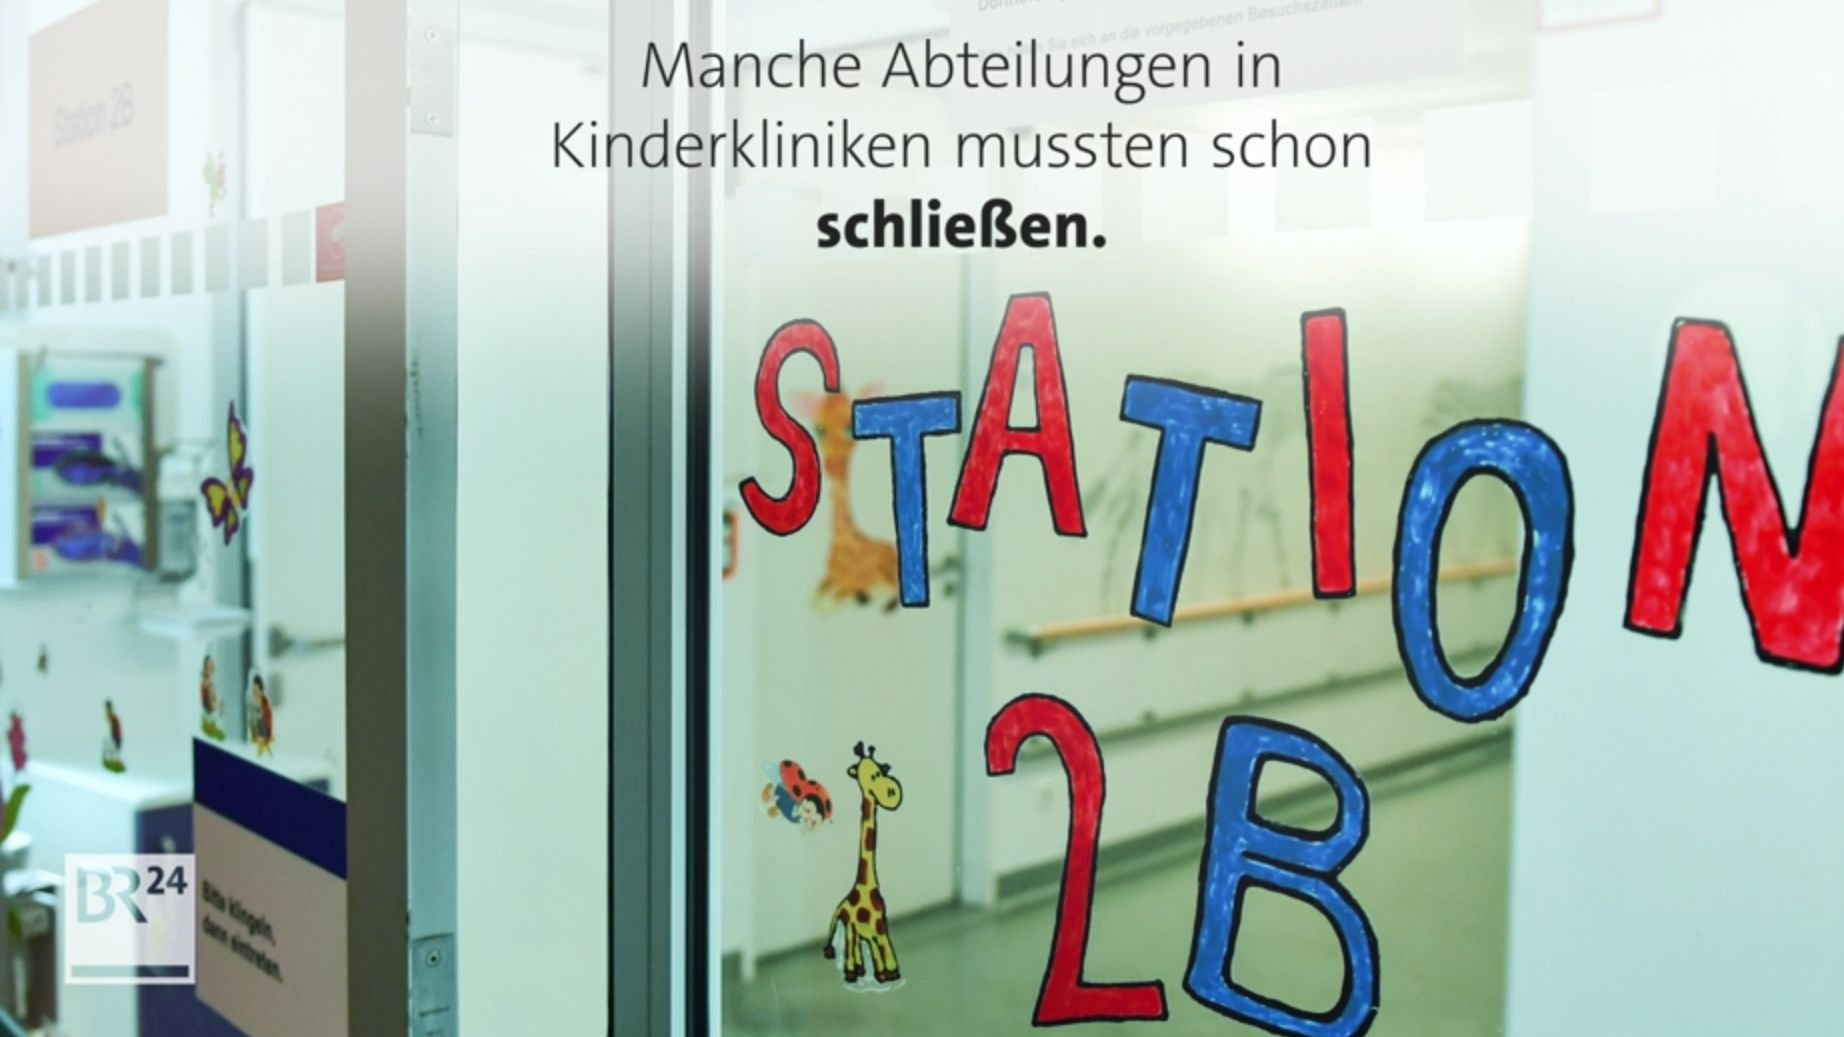 #fragBR24: Kinderkliniken in Not, was ist da los?